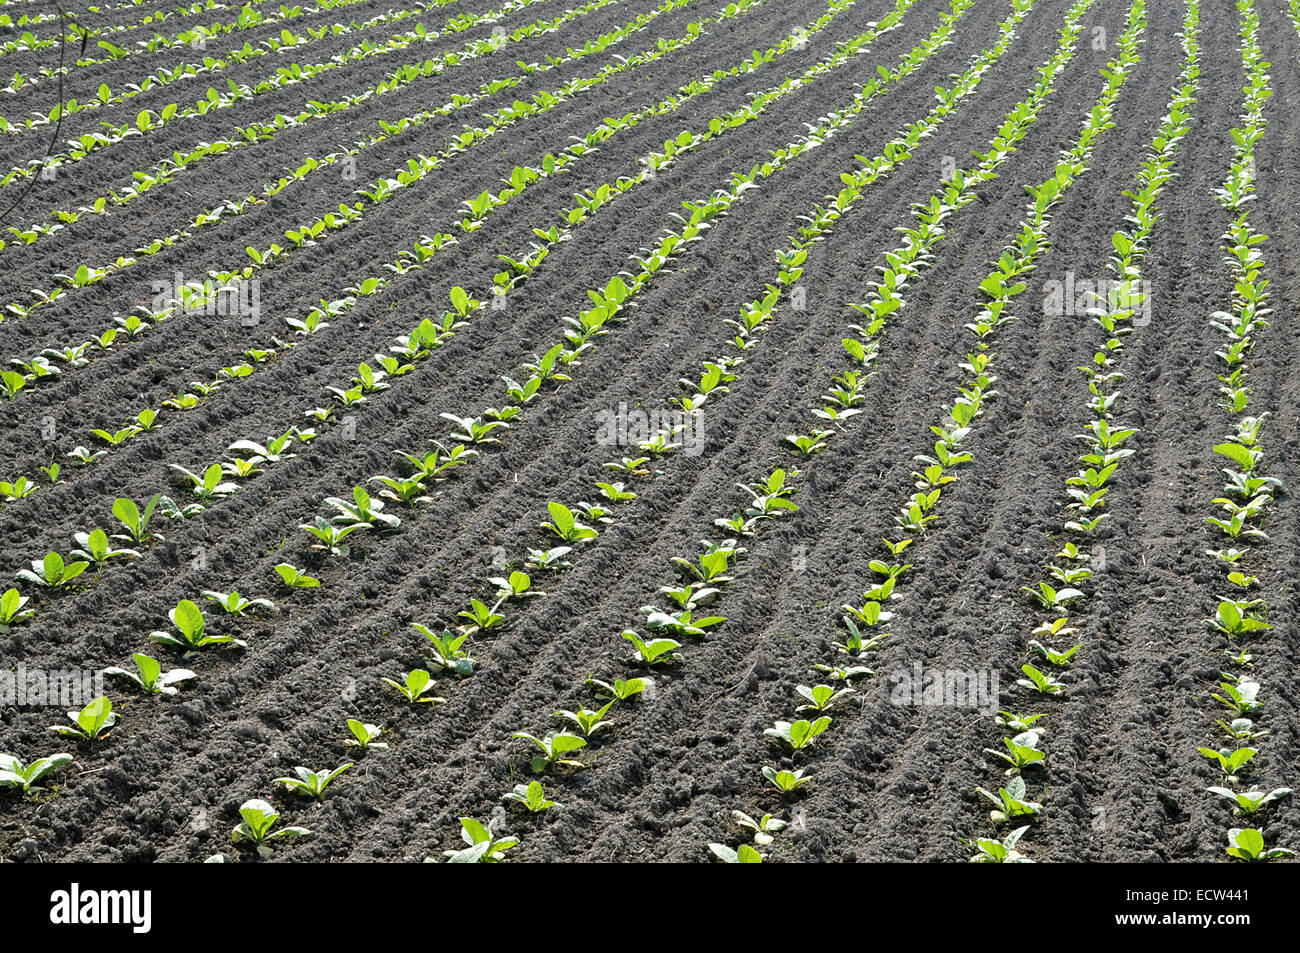 December 2010.Tobacco field in manikganj out site of Dhaka . - Stock Image